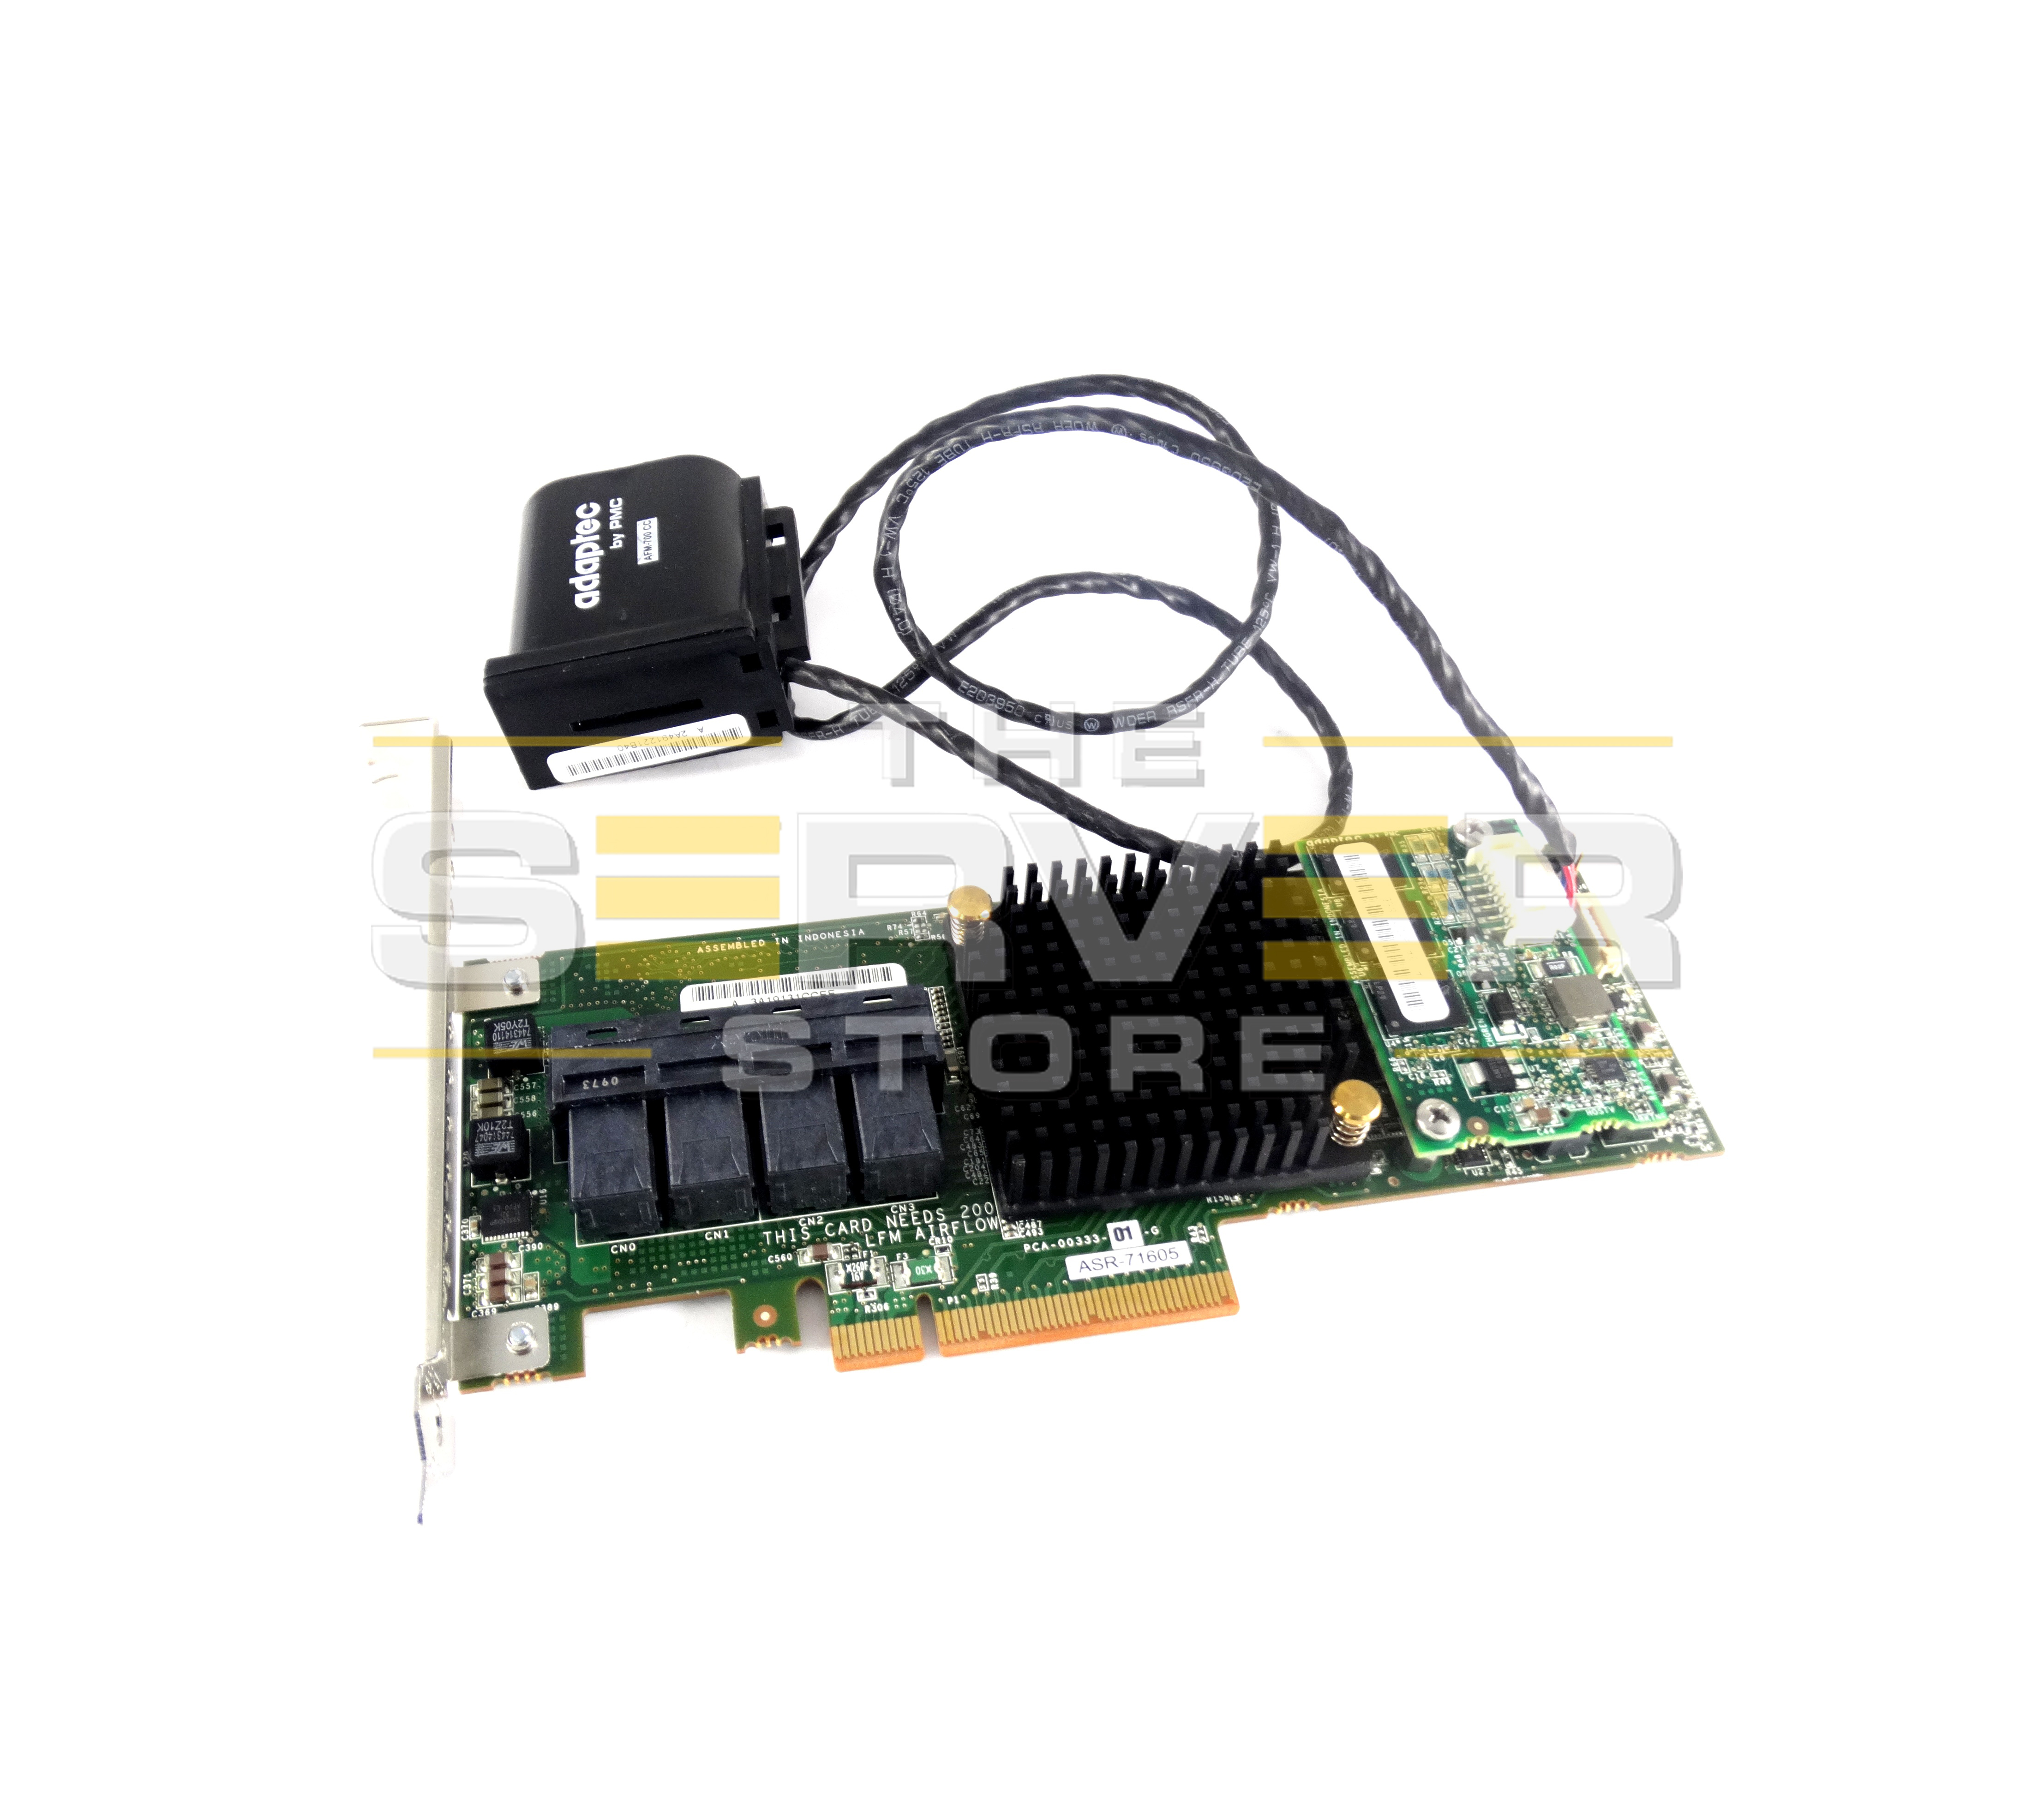 Adaptec 2274400-R SAS SATA 6Gbps PCI-E RAID Controller with 1GB Battery Backed Cache, ASR-71605